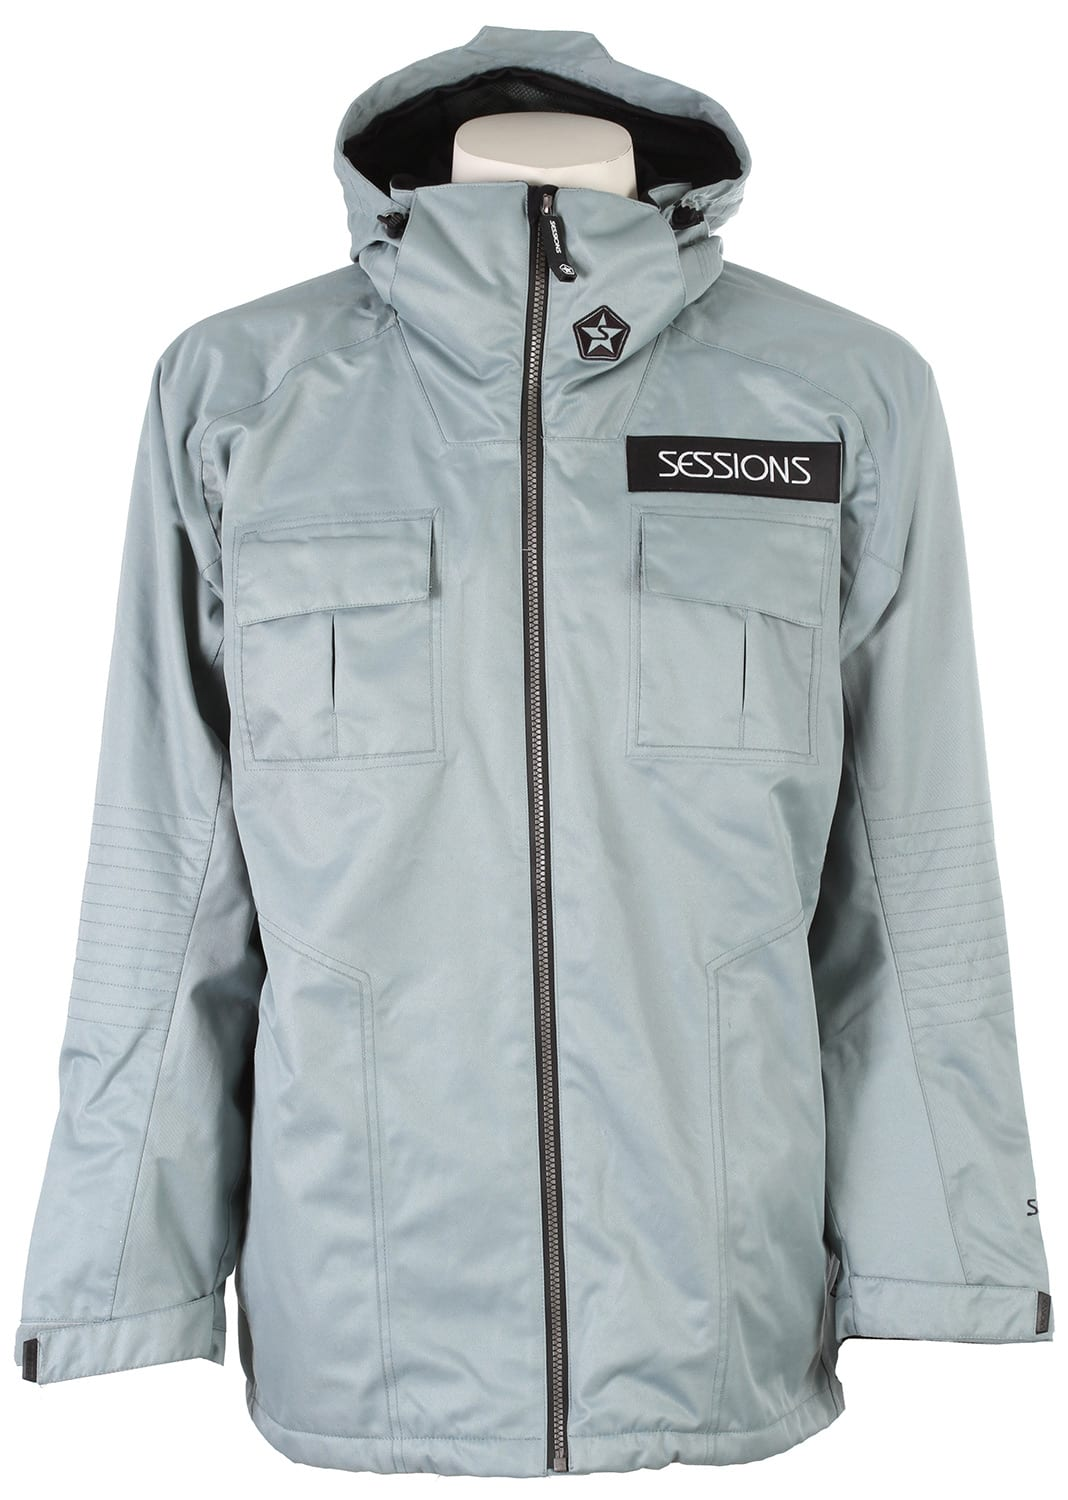 On Sale Sessions Gopro Snowboard Jacket Up To 60 Off